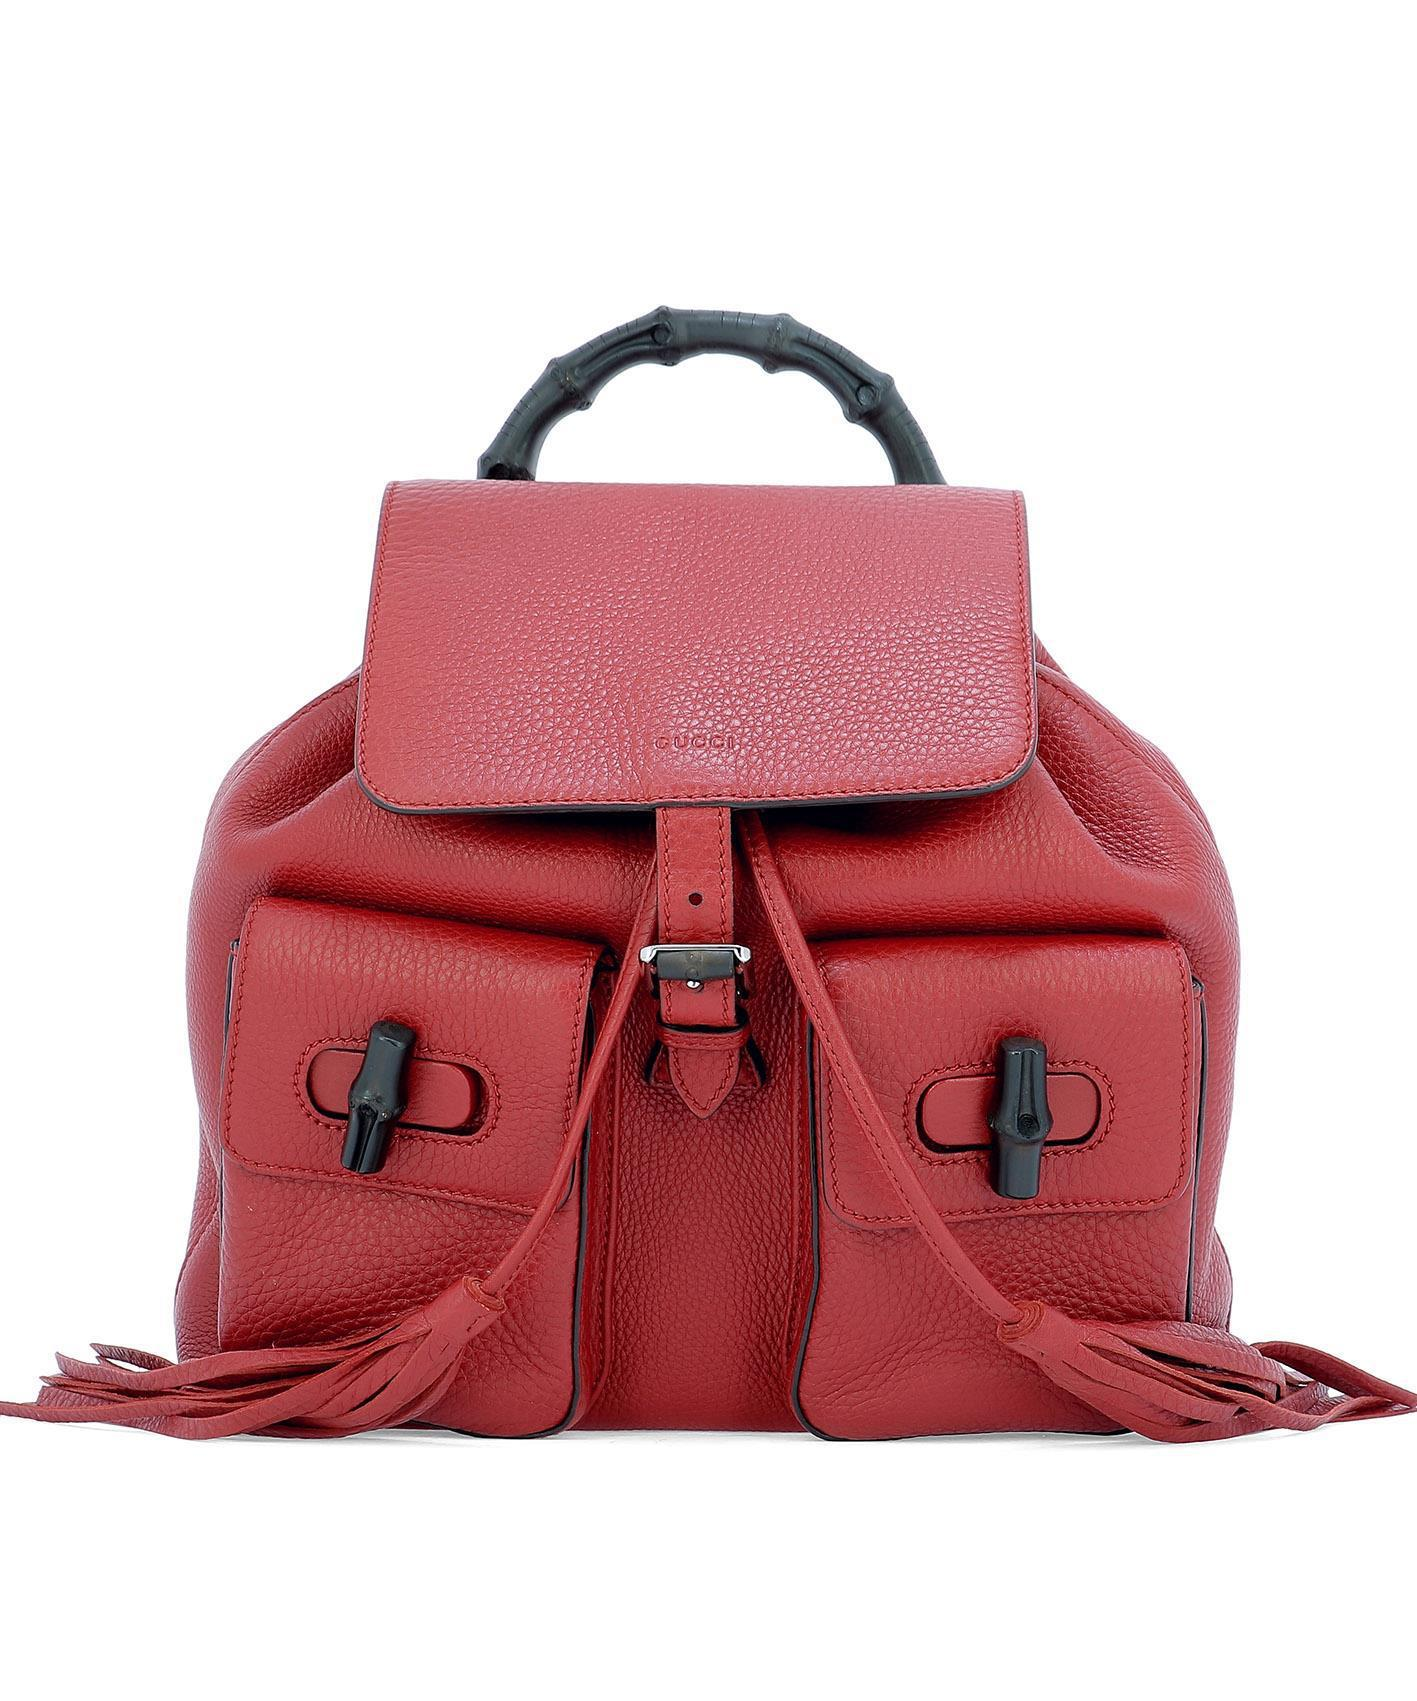 2bd8023140d16d Gucci Vintage Bamboo Backpack In Red | ModeSens